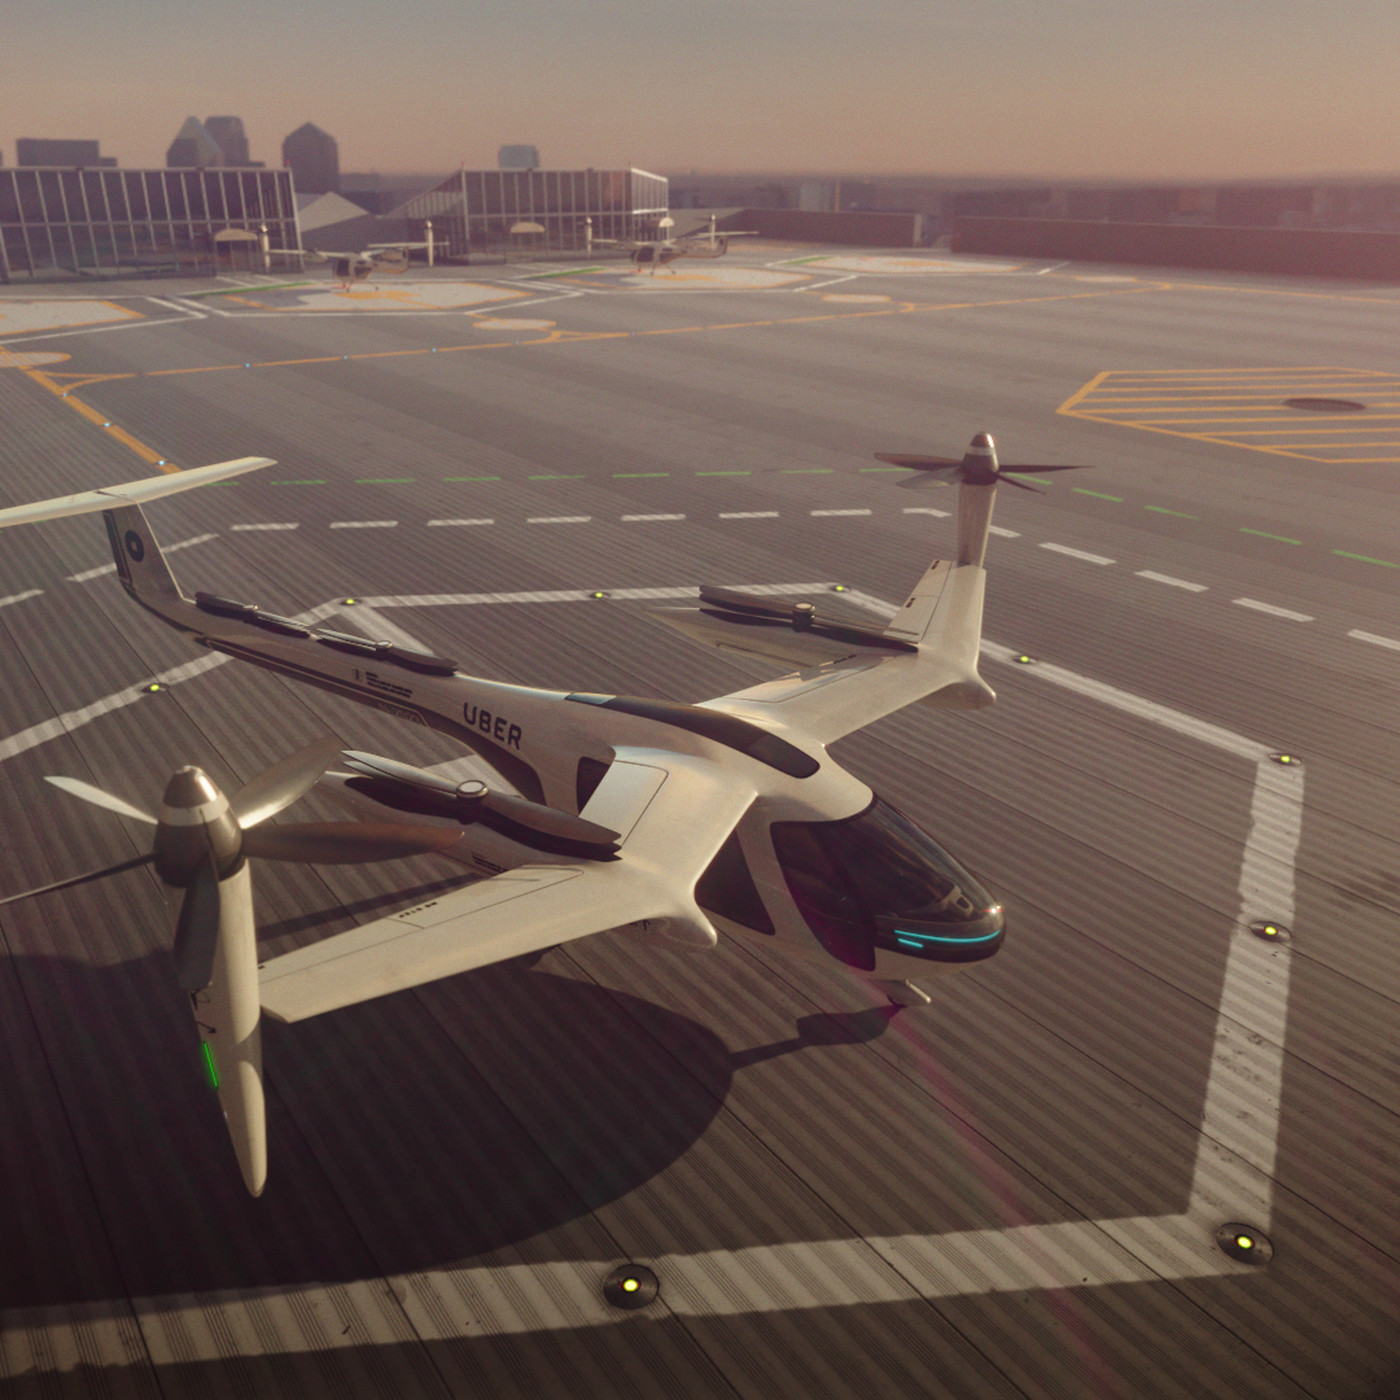 Uber's 'flying cars' could arrive in LA by 2020 — and here's what it